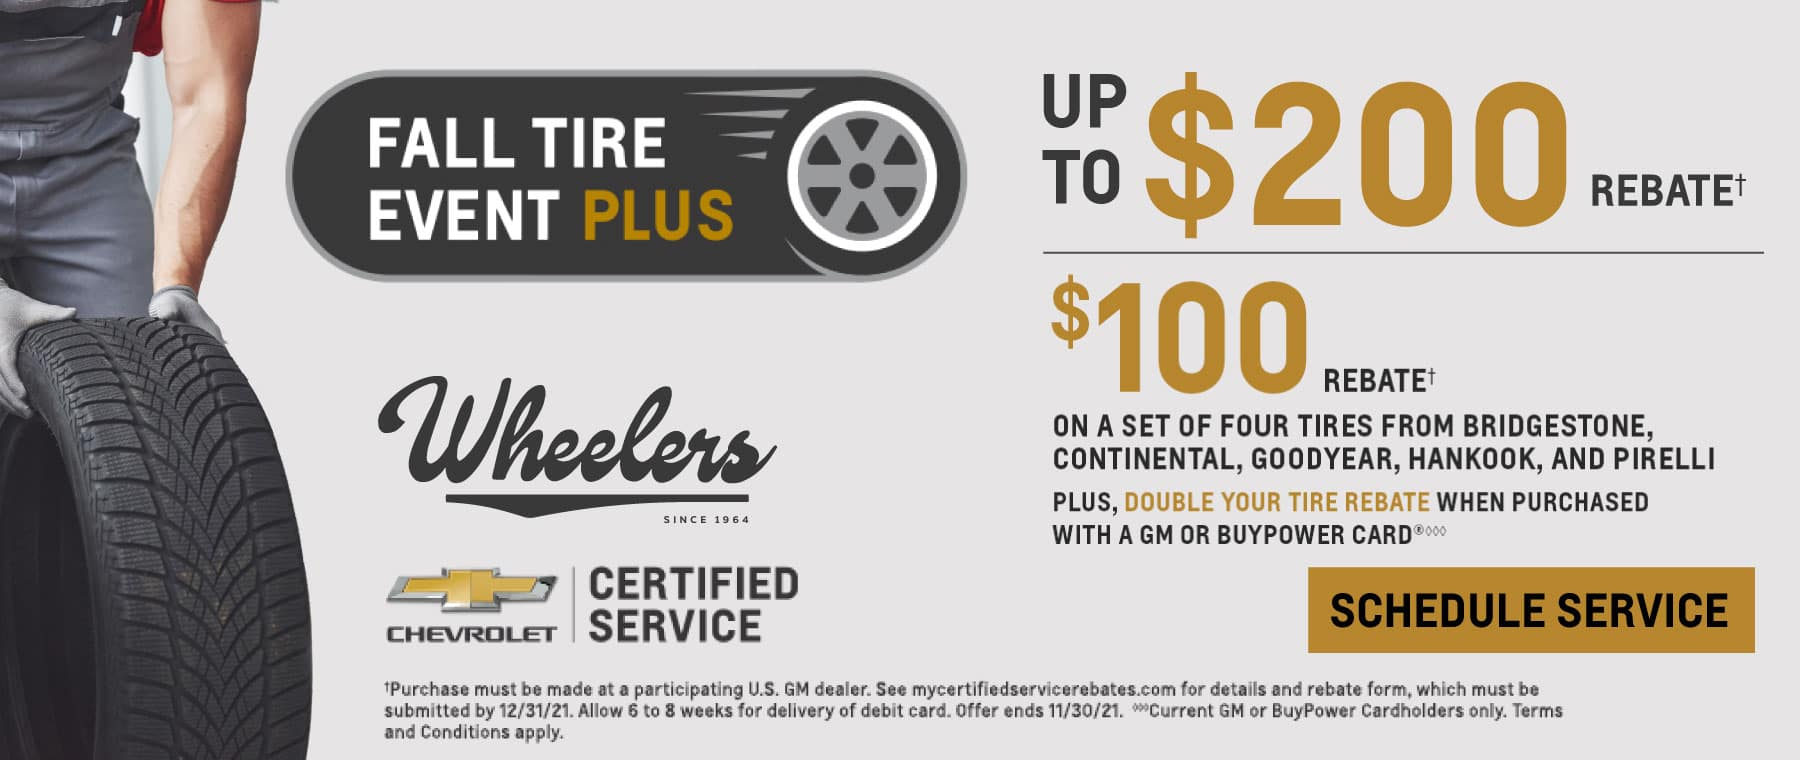 FALL-TIRE-EVENT-PLUS-WEBMASTER